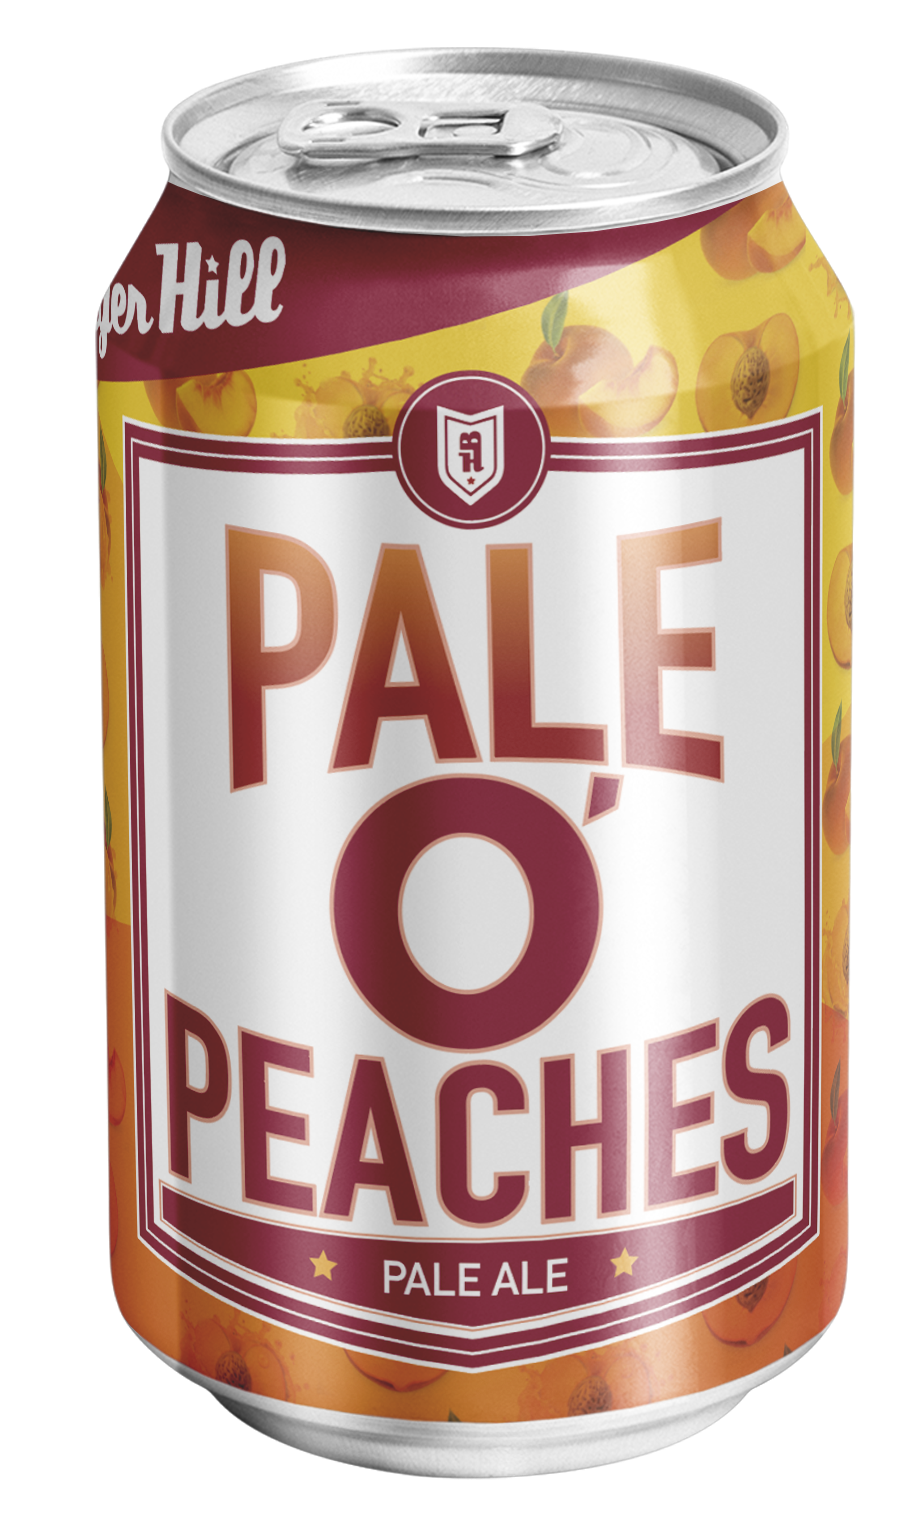 Pale O' Peaches Pale ALe - 5.3% ABV * 40 IBUPale O' Peaches Pale Ale is a juicy pale ale that's pairs well with warmer weather and sunny days. The perfect post-yard work brew that's not too sweet and highly refreshing. It's infused with real peach puree and you can find it on tap, in 6-packs and our Spring Mixed Pack on your favorite liquor store shelf.Hops: CTZ, Cascade, Citra, MosaicMalt: 2-Row, Carafoam, Munich INotes of citrus, made with real peachPairs with fish tacos, pad thai and tangy cheeseAVAILABLE: 4/6 packs, Spring Mixed 12-pack, 1/2bbl, 1/6bbl